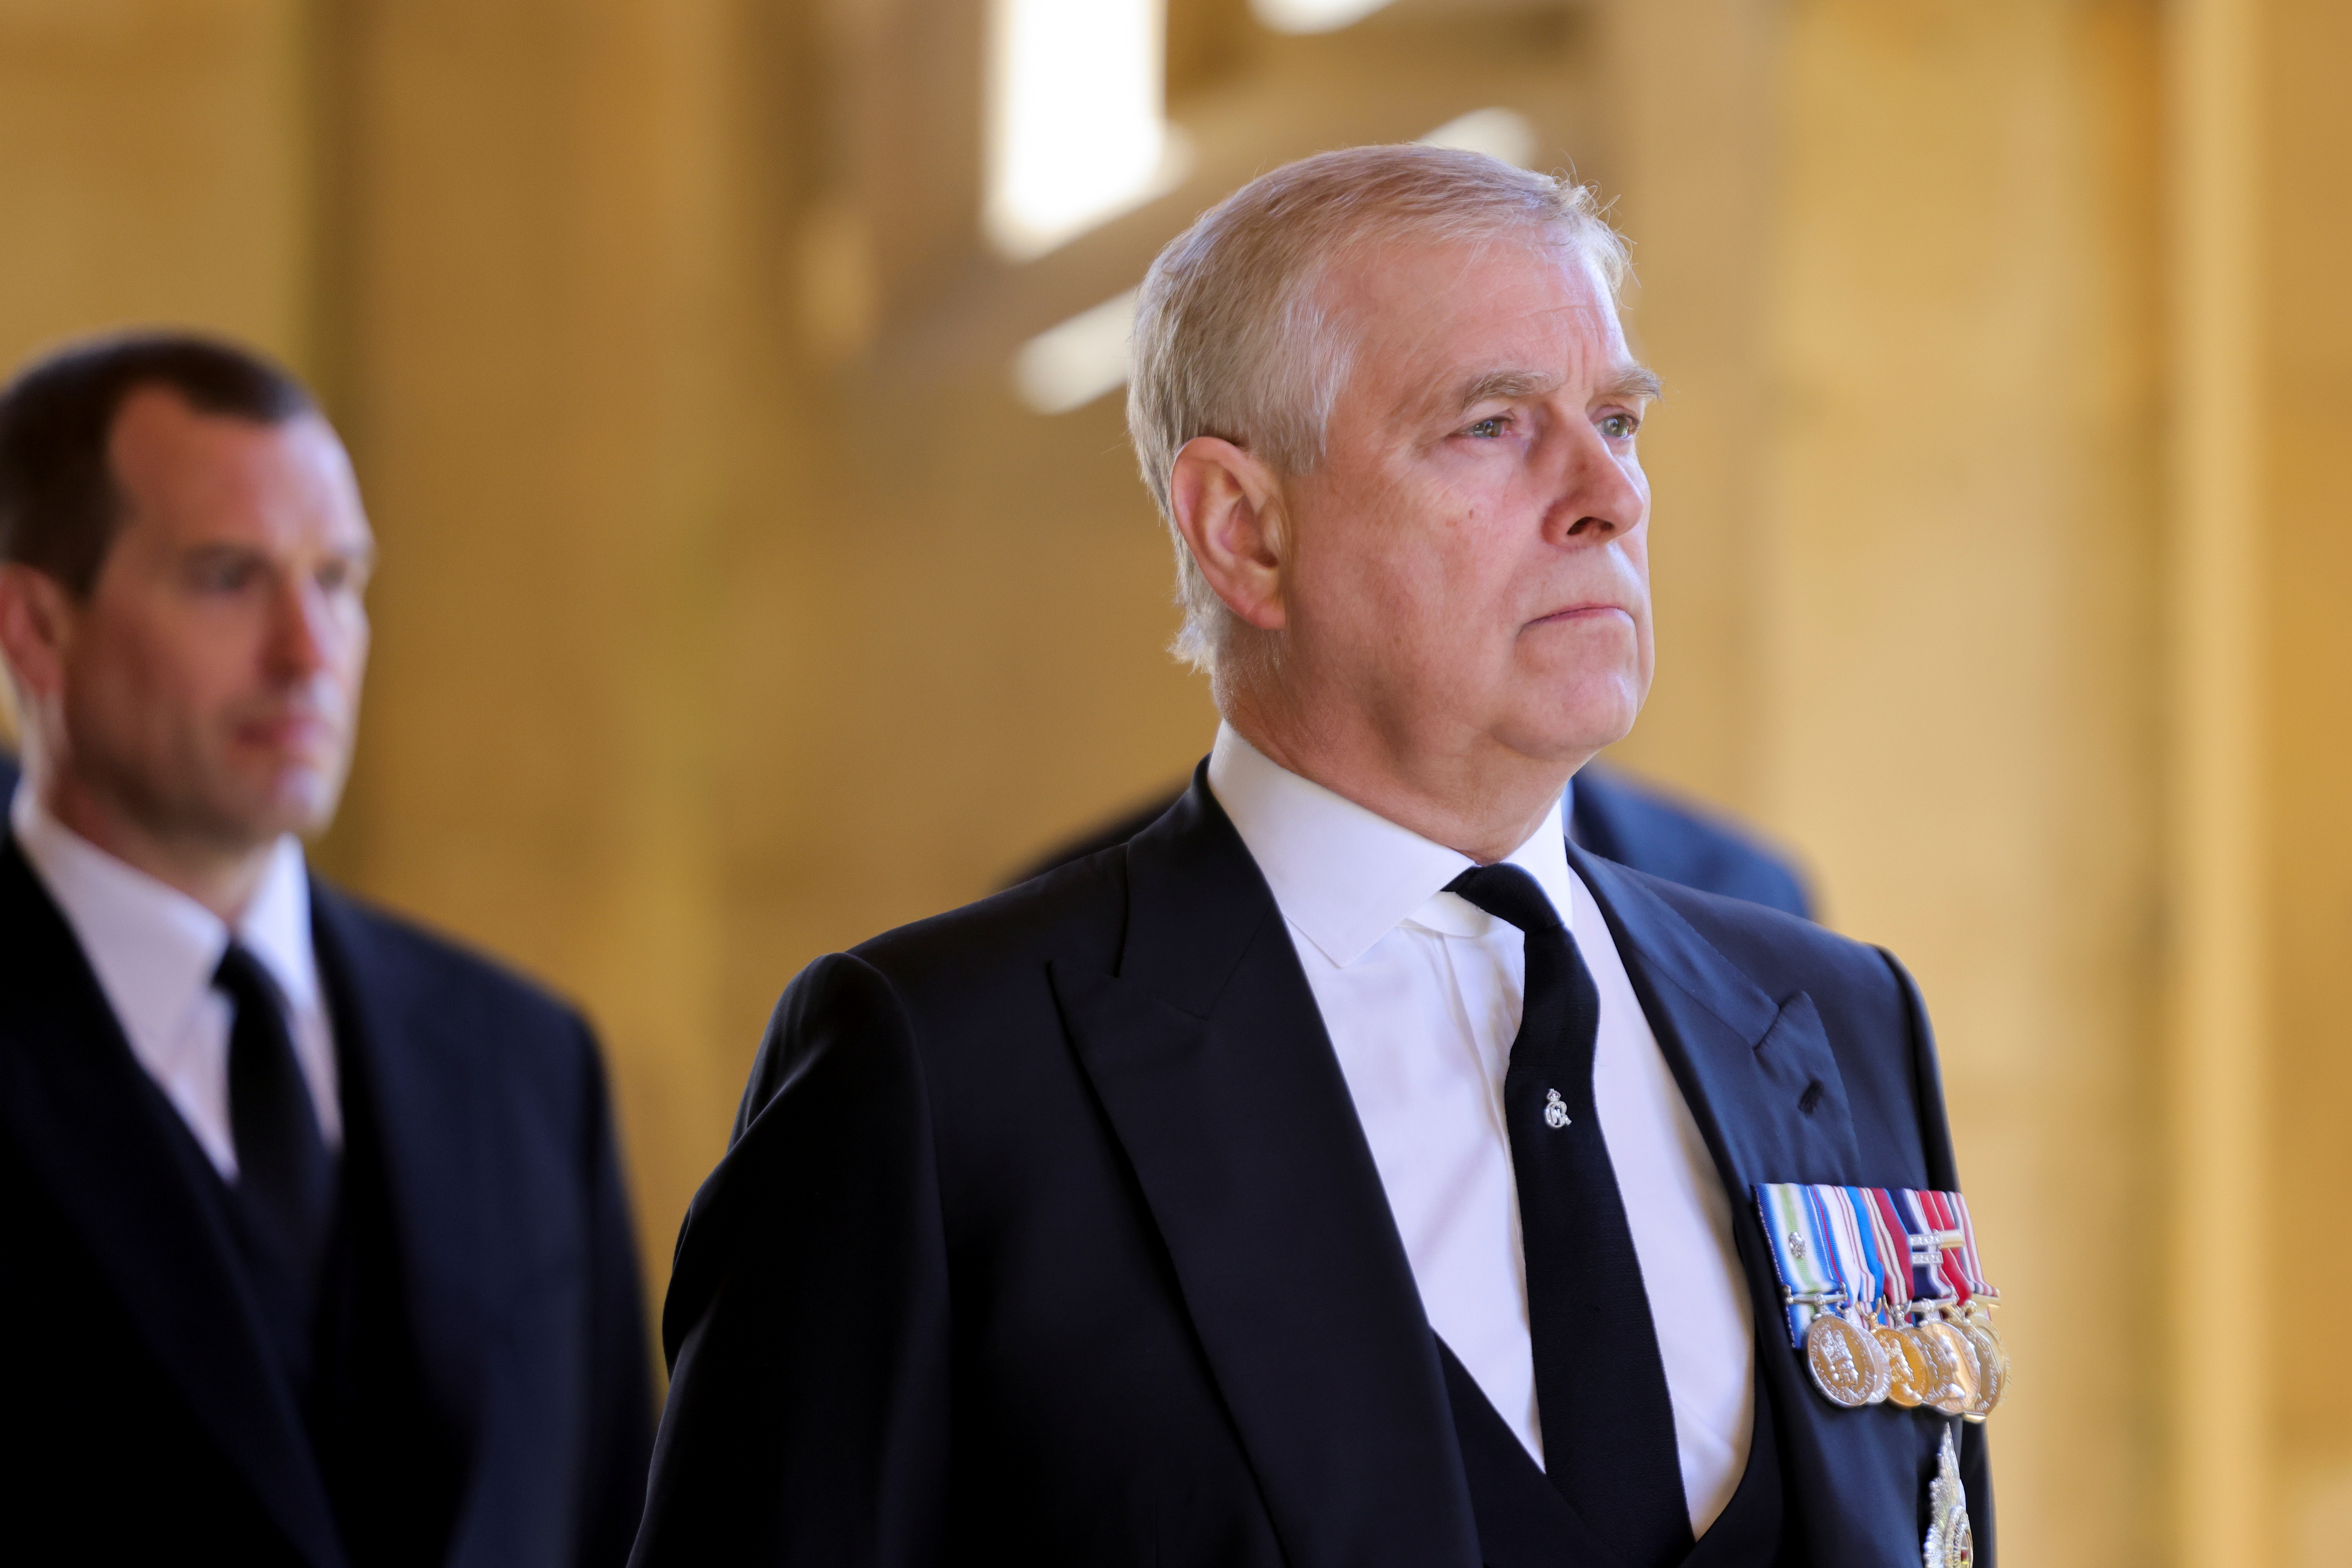 Britain's Britain's Prince Andrew, Duke of York, looks on during the funeral of Britain's Prince Philip on the grounds of Windsor Castle in Windsor, Britain, April 17, 2021. Chris Jackson/REUTERS